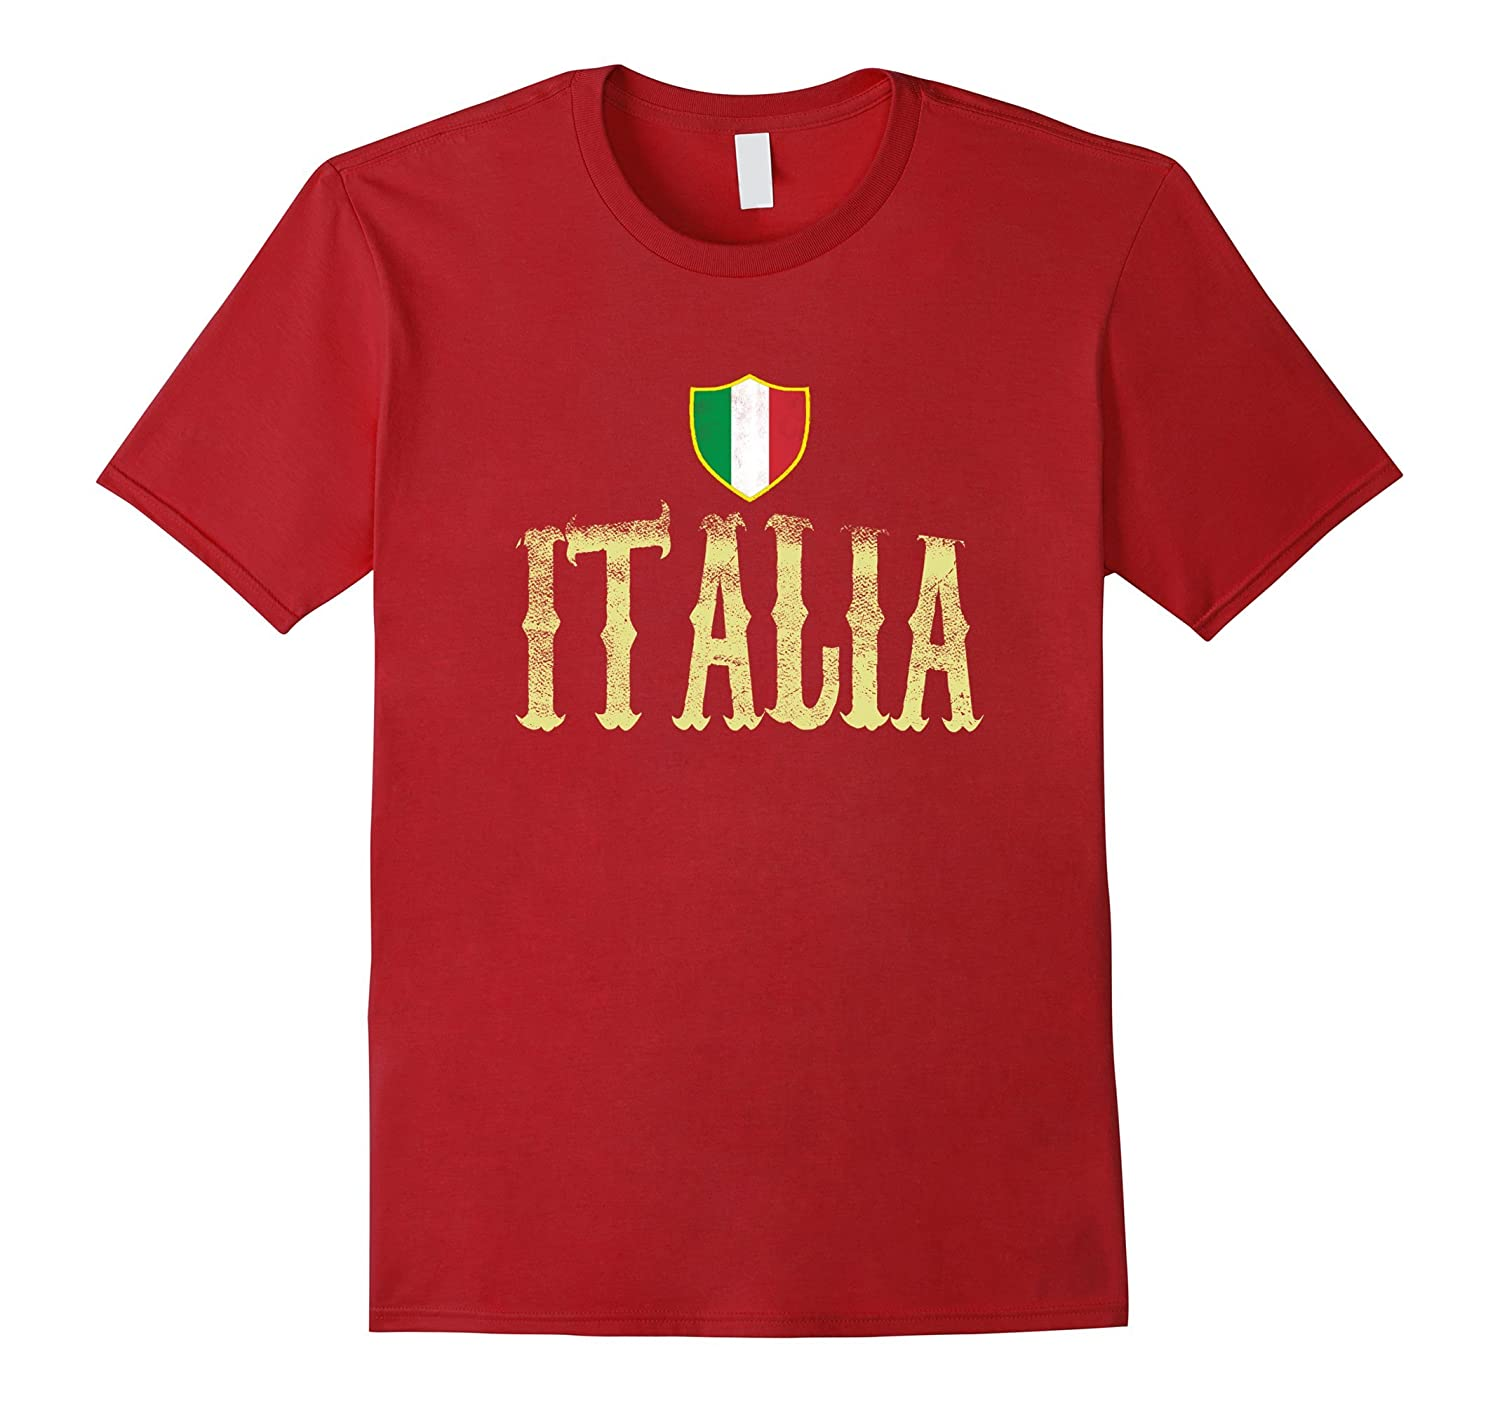 Vintage Flag T shirt Italian Heather-Awarplus